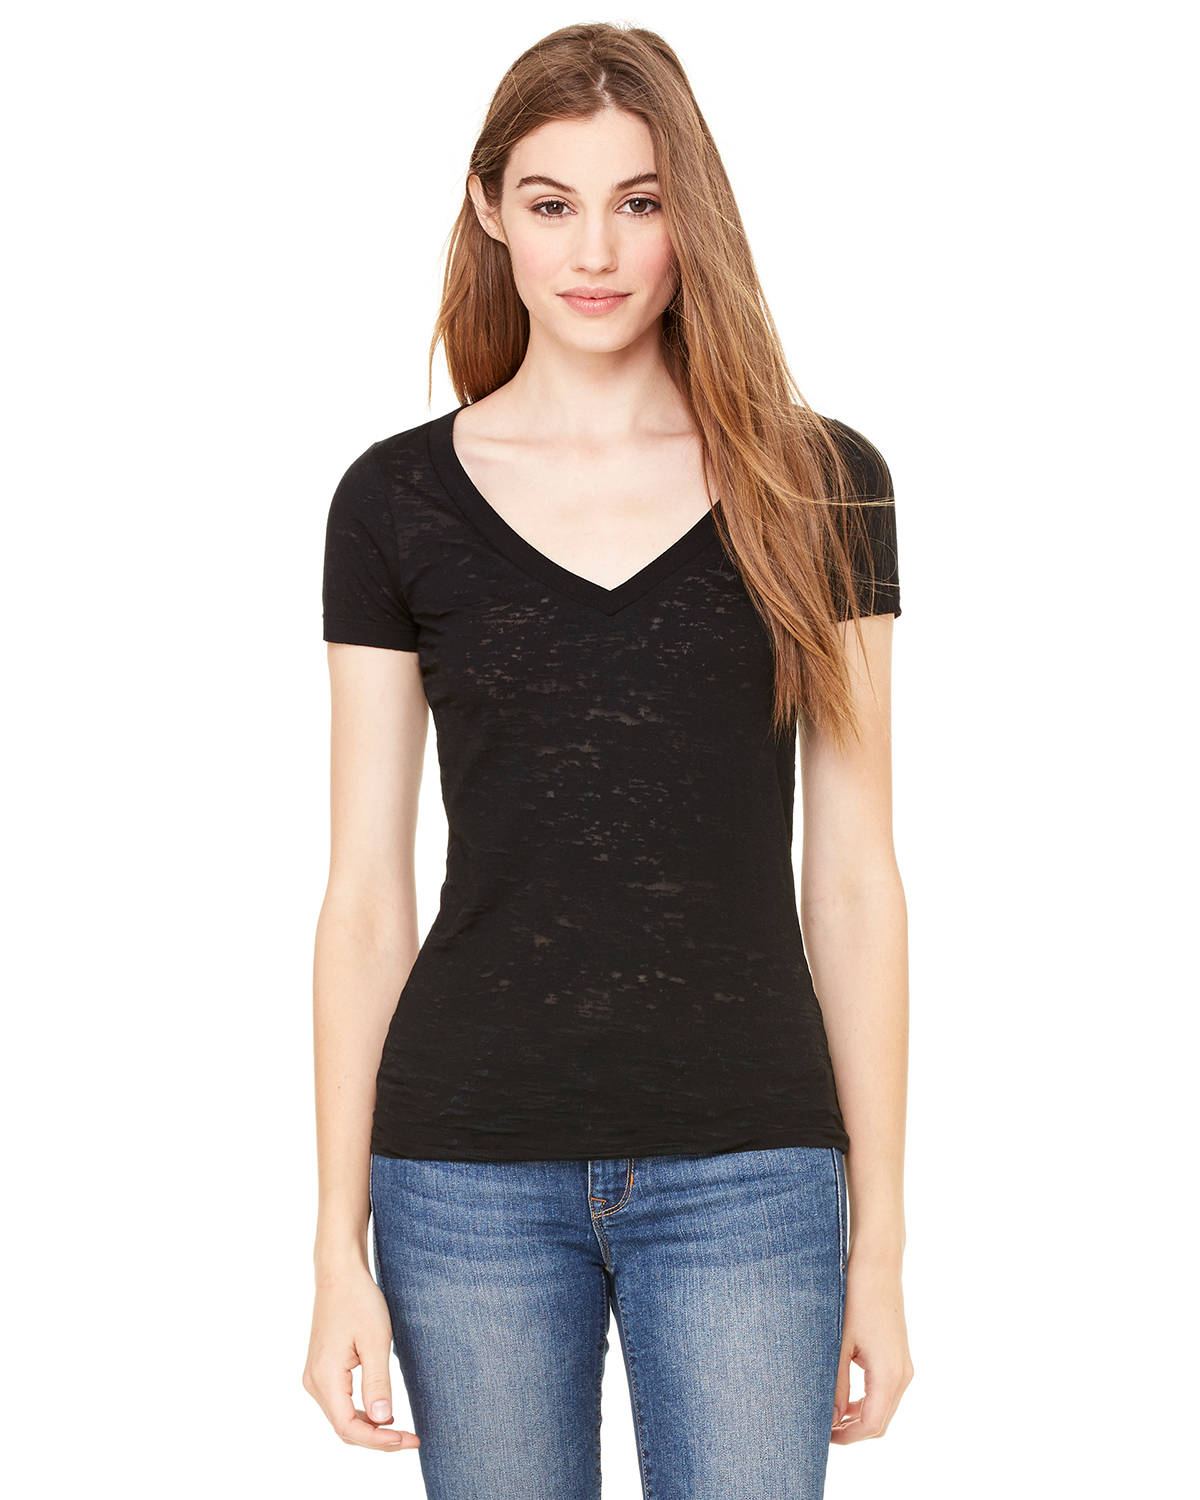 Bella - Ladies' Burnout V-Neck T-Shirt - 8605